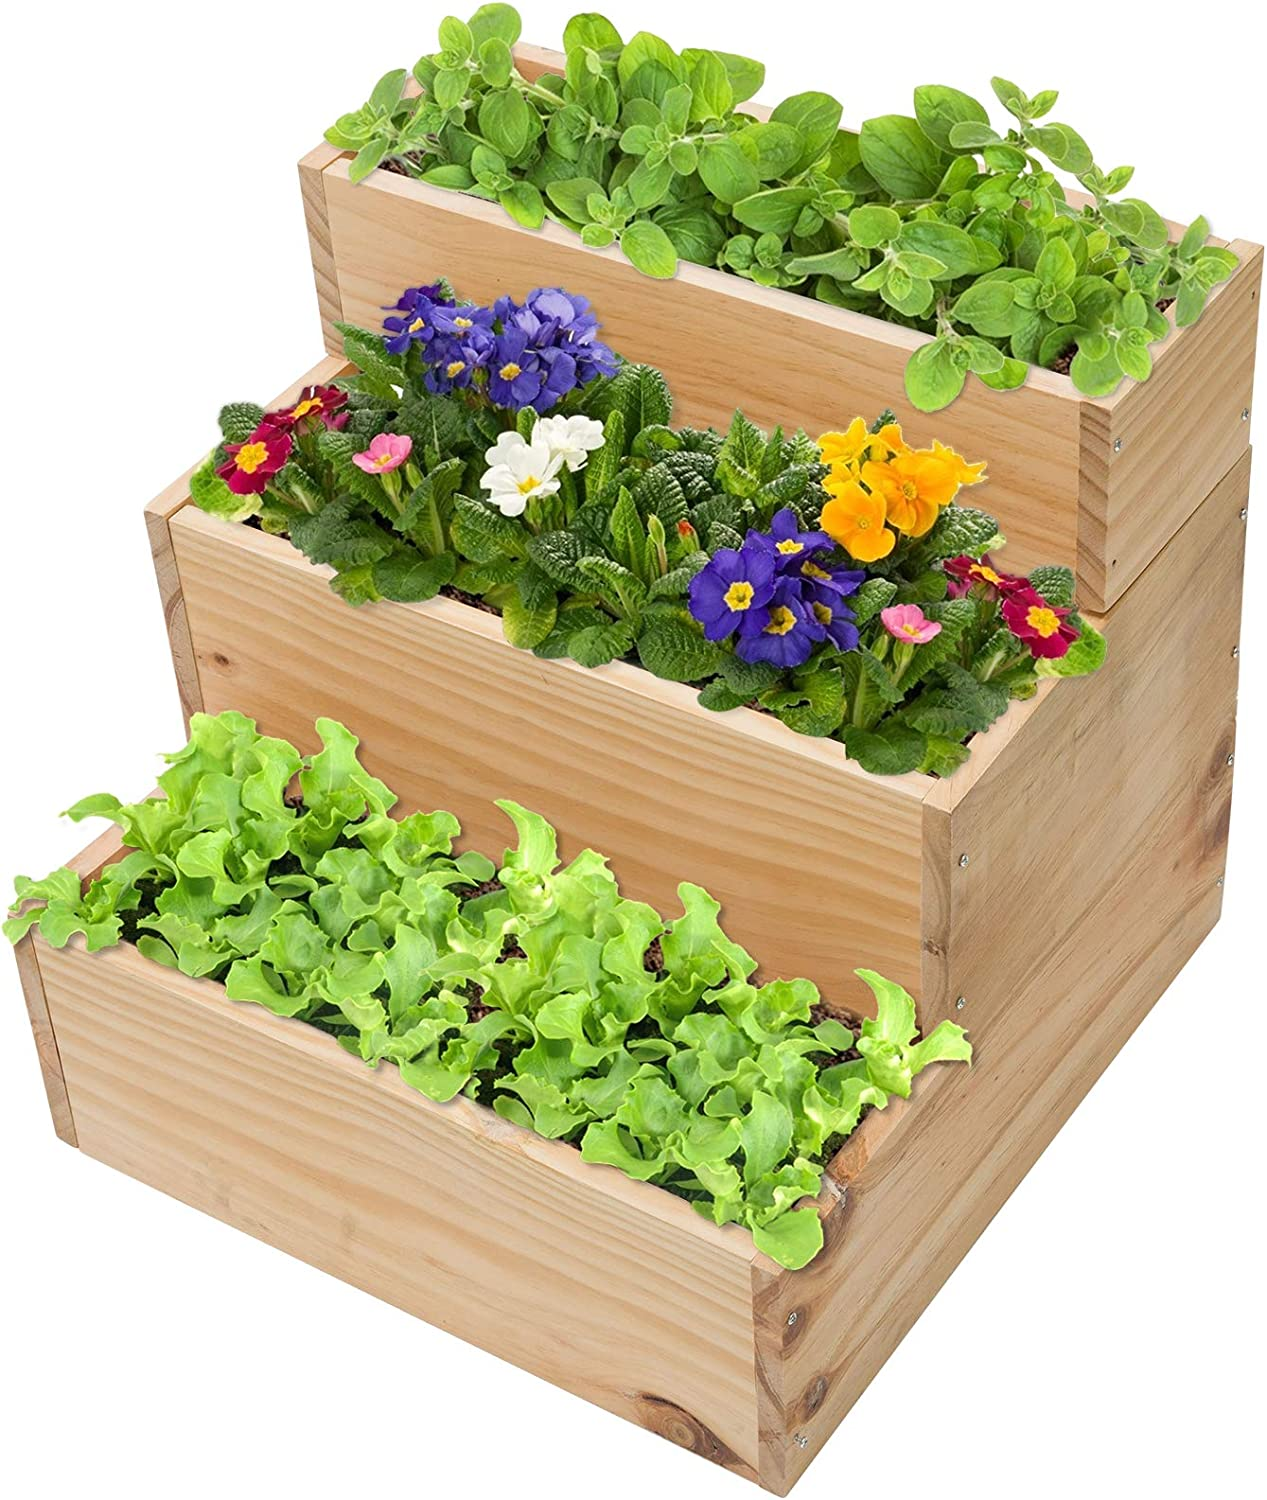 Limited time for free shipping 3 Tier Wooden Raised Attention brand Garden Bed- Eleva Small 16.5 Inch 16 ×